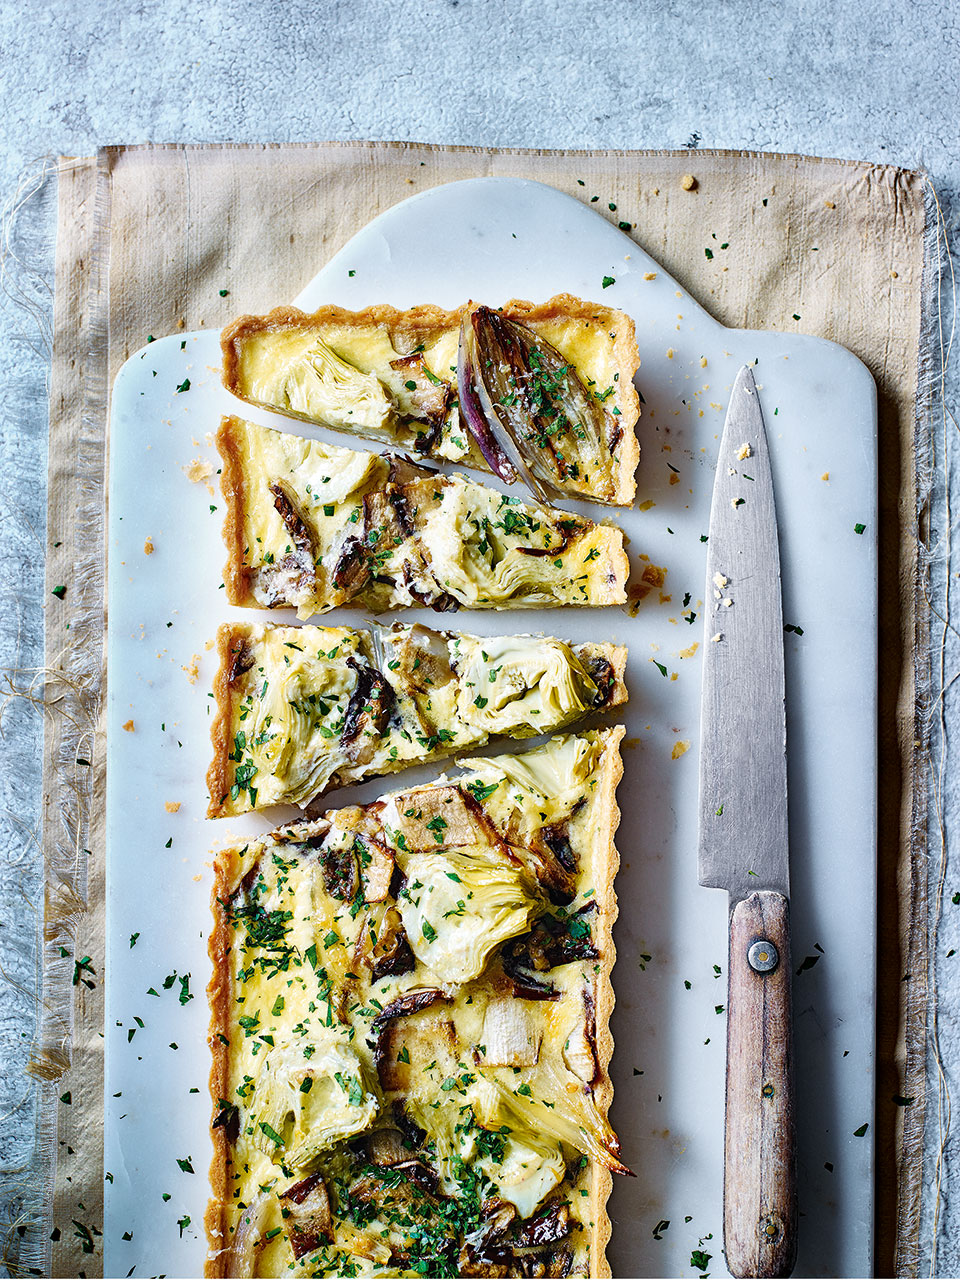 Radicchio and artichoke tart